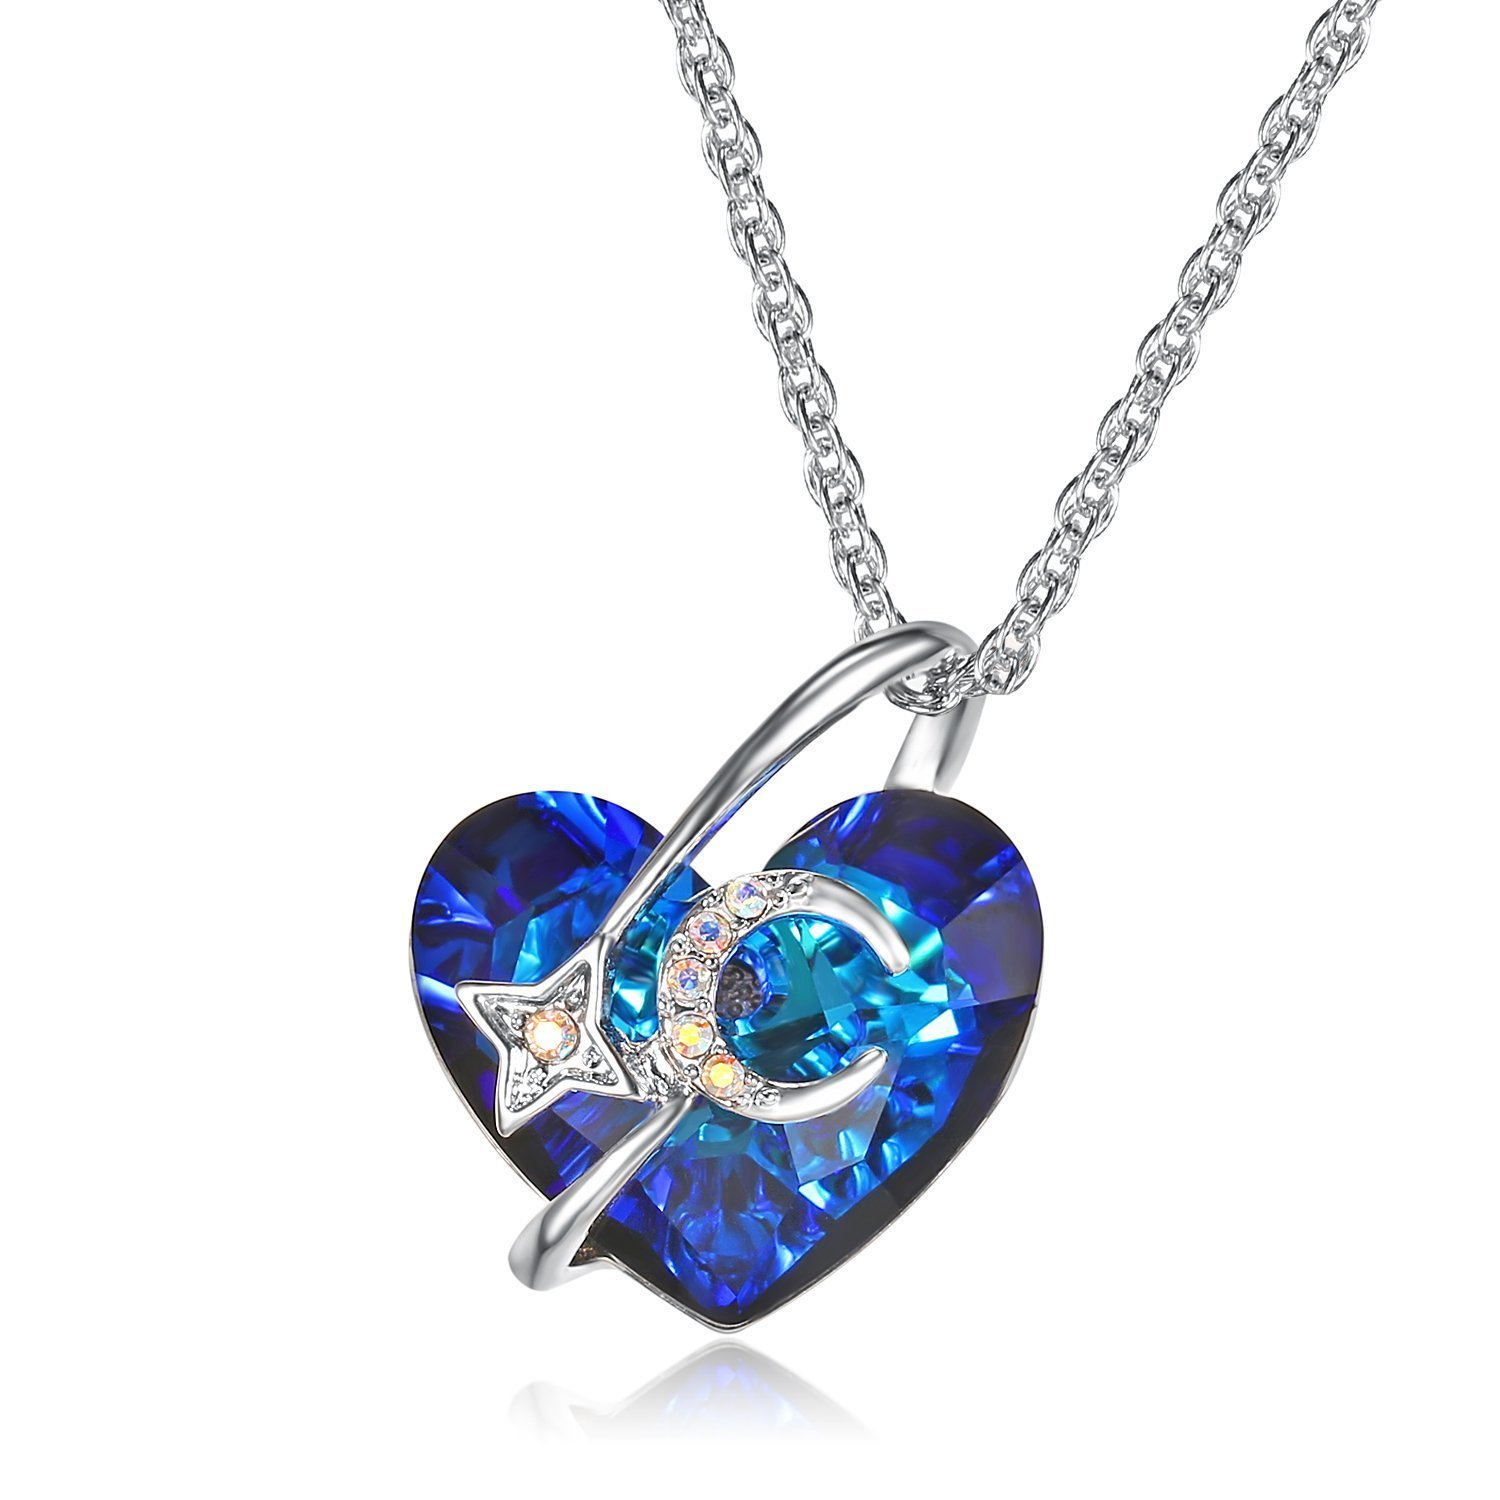 Lee Island Fashion Jewelry 18K White Gold Plated Necklace with Blue Heart Austrian Crystal Moon Star Pendant and Enhancer,18 Inches Chain for Woman Girl Gift-Halloween Costumes Princess Necklace B07C31G3GJ_US